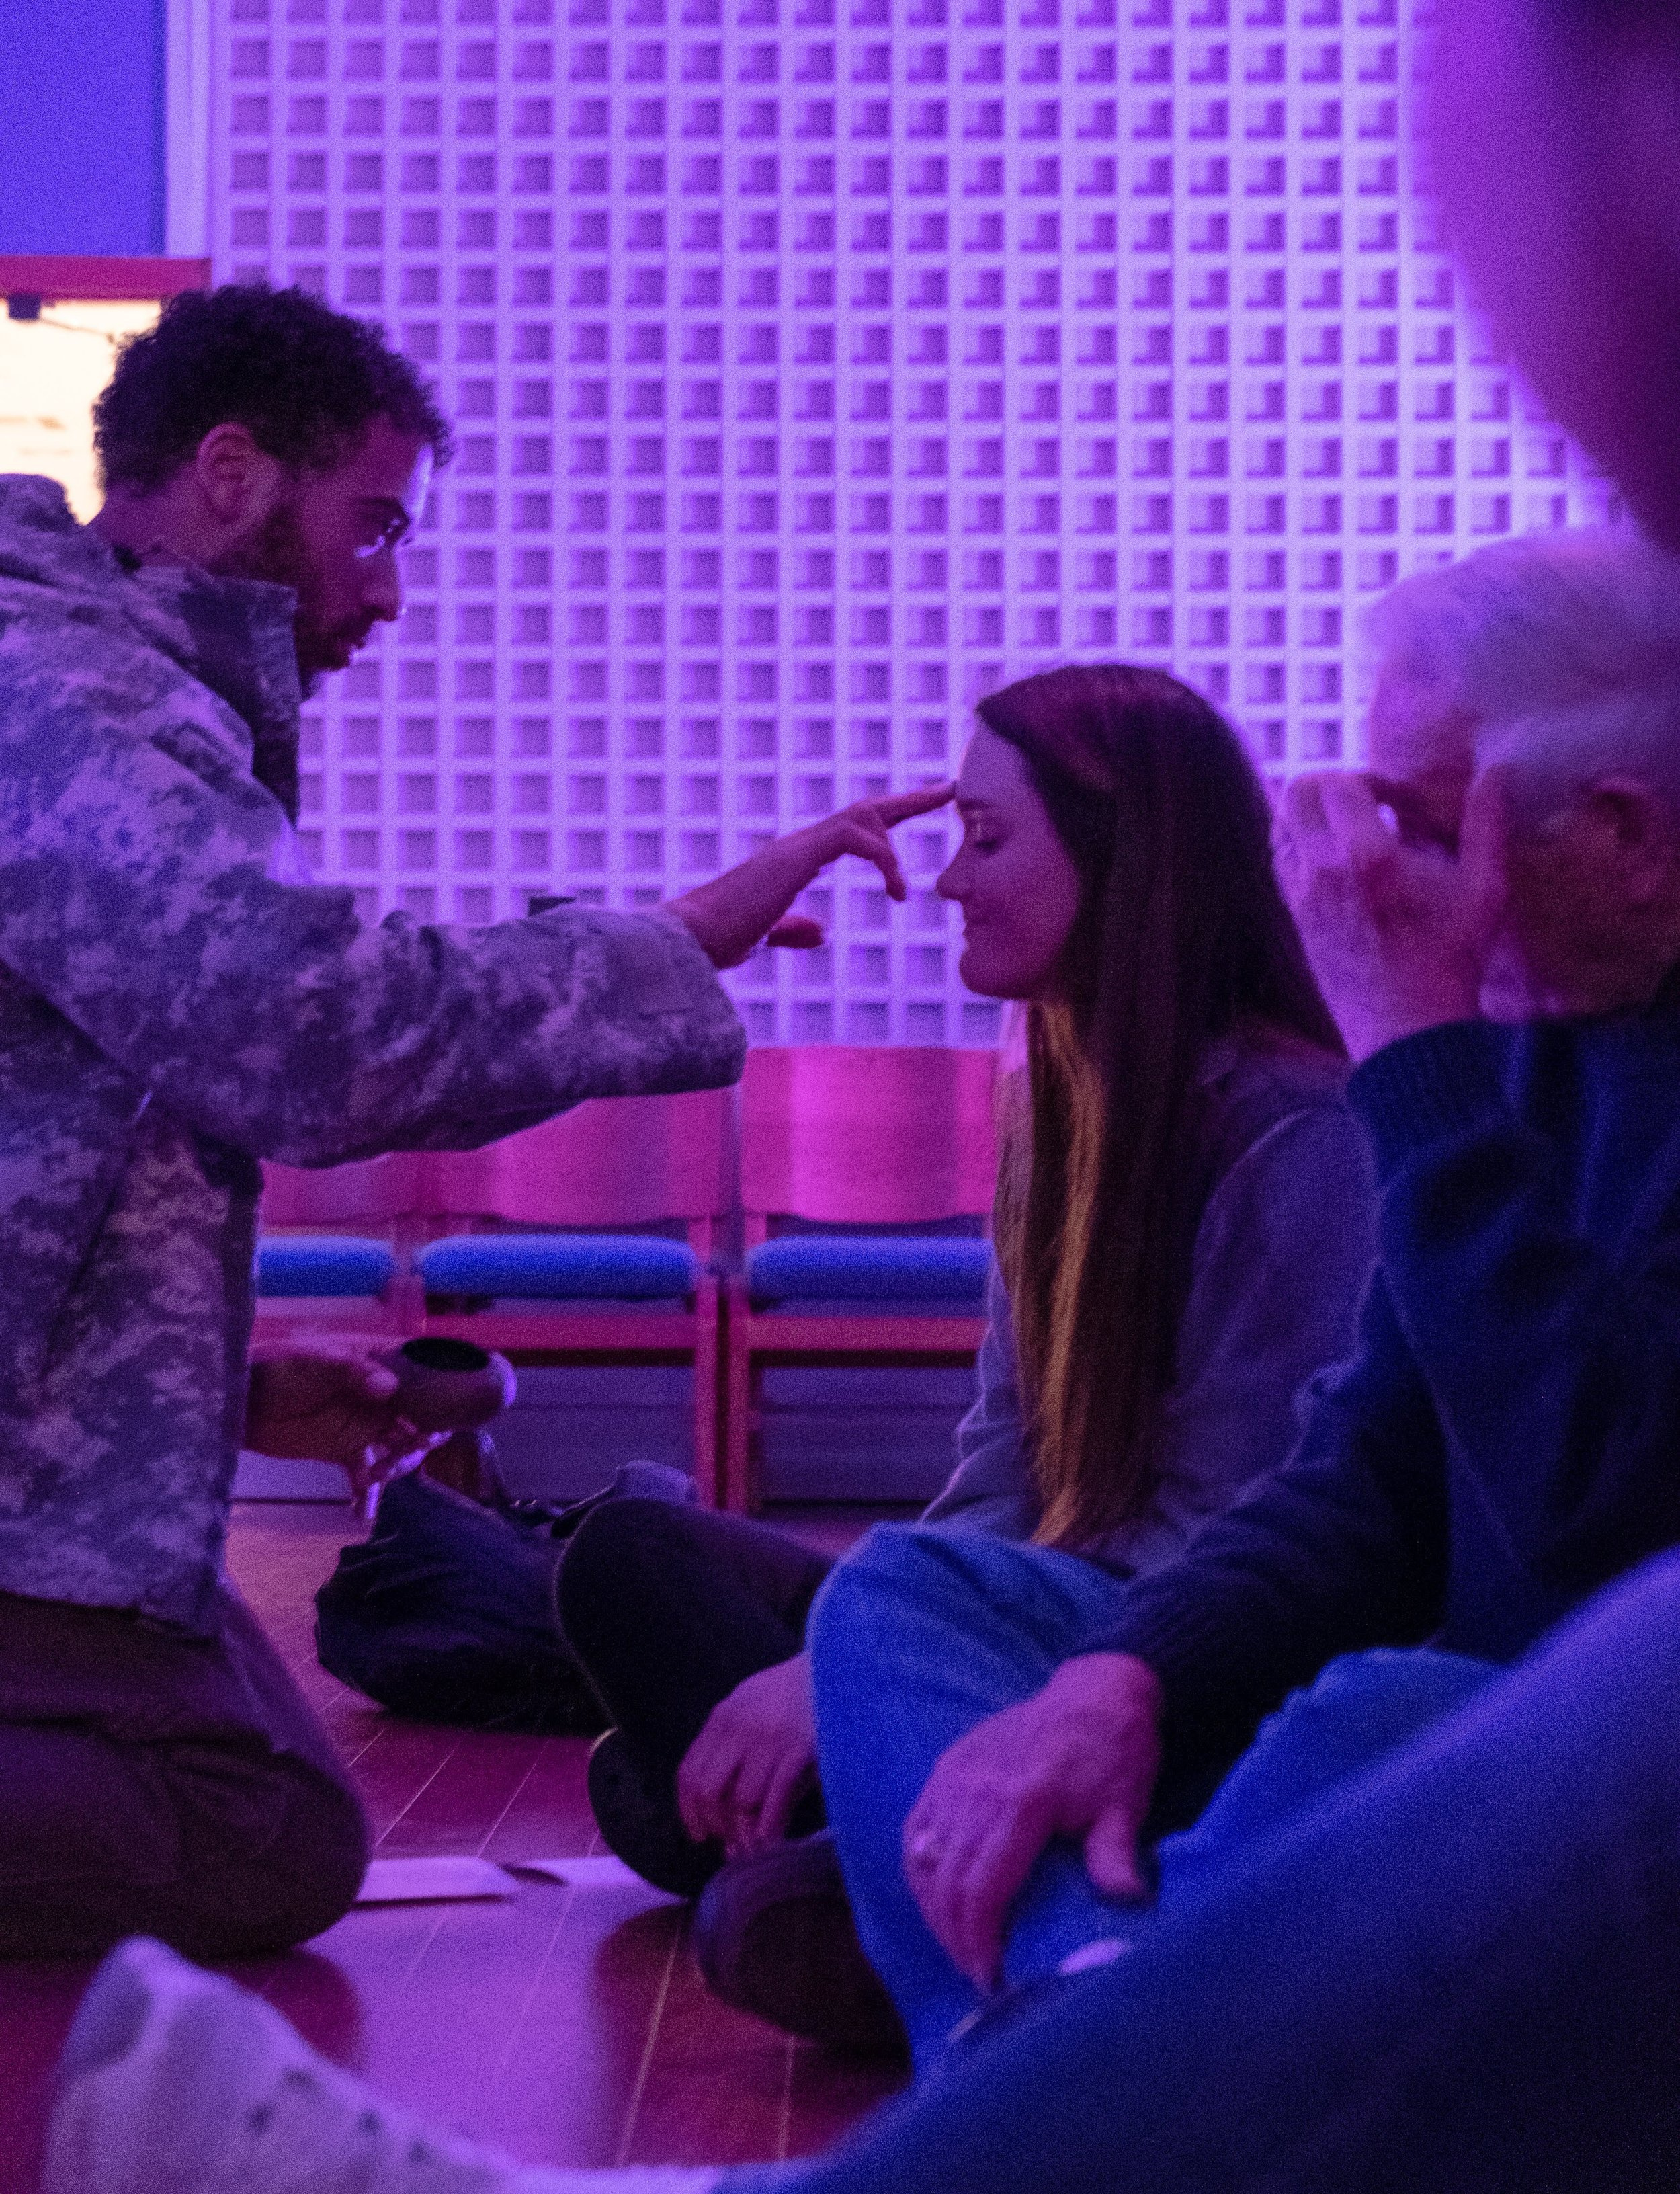 Texas State students receive and share ashes during Ash Wednesday worship at the United Campus Ministry. Photo credit: Tania Zapien